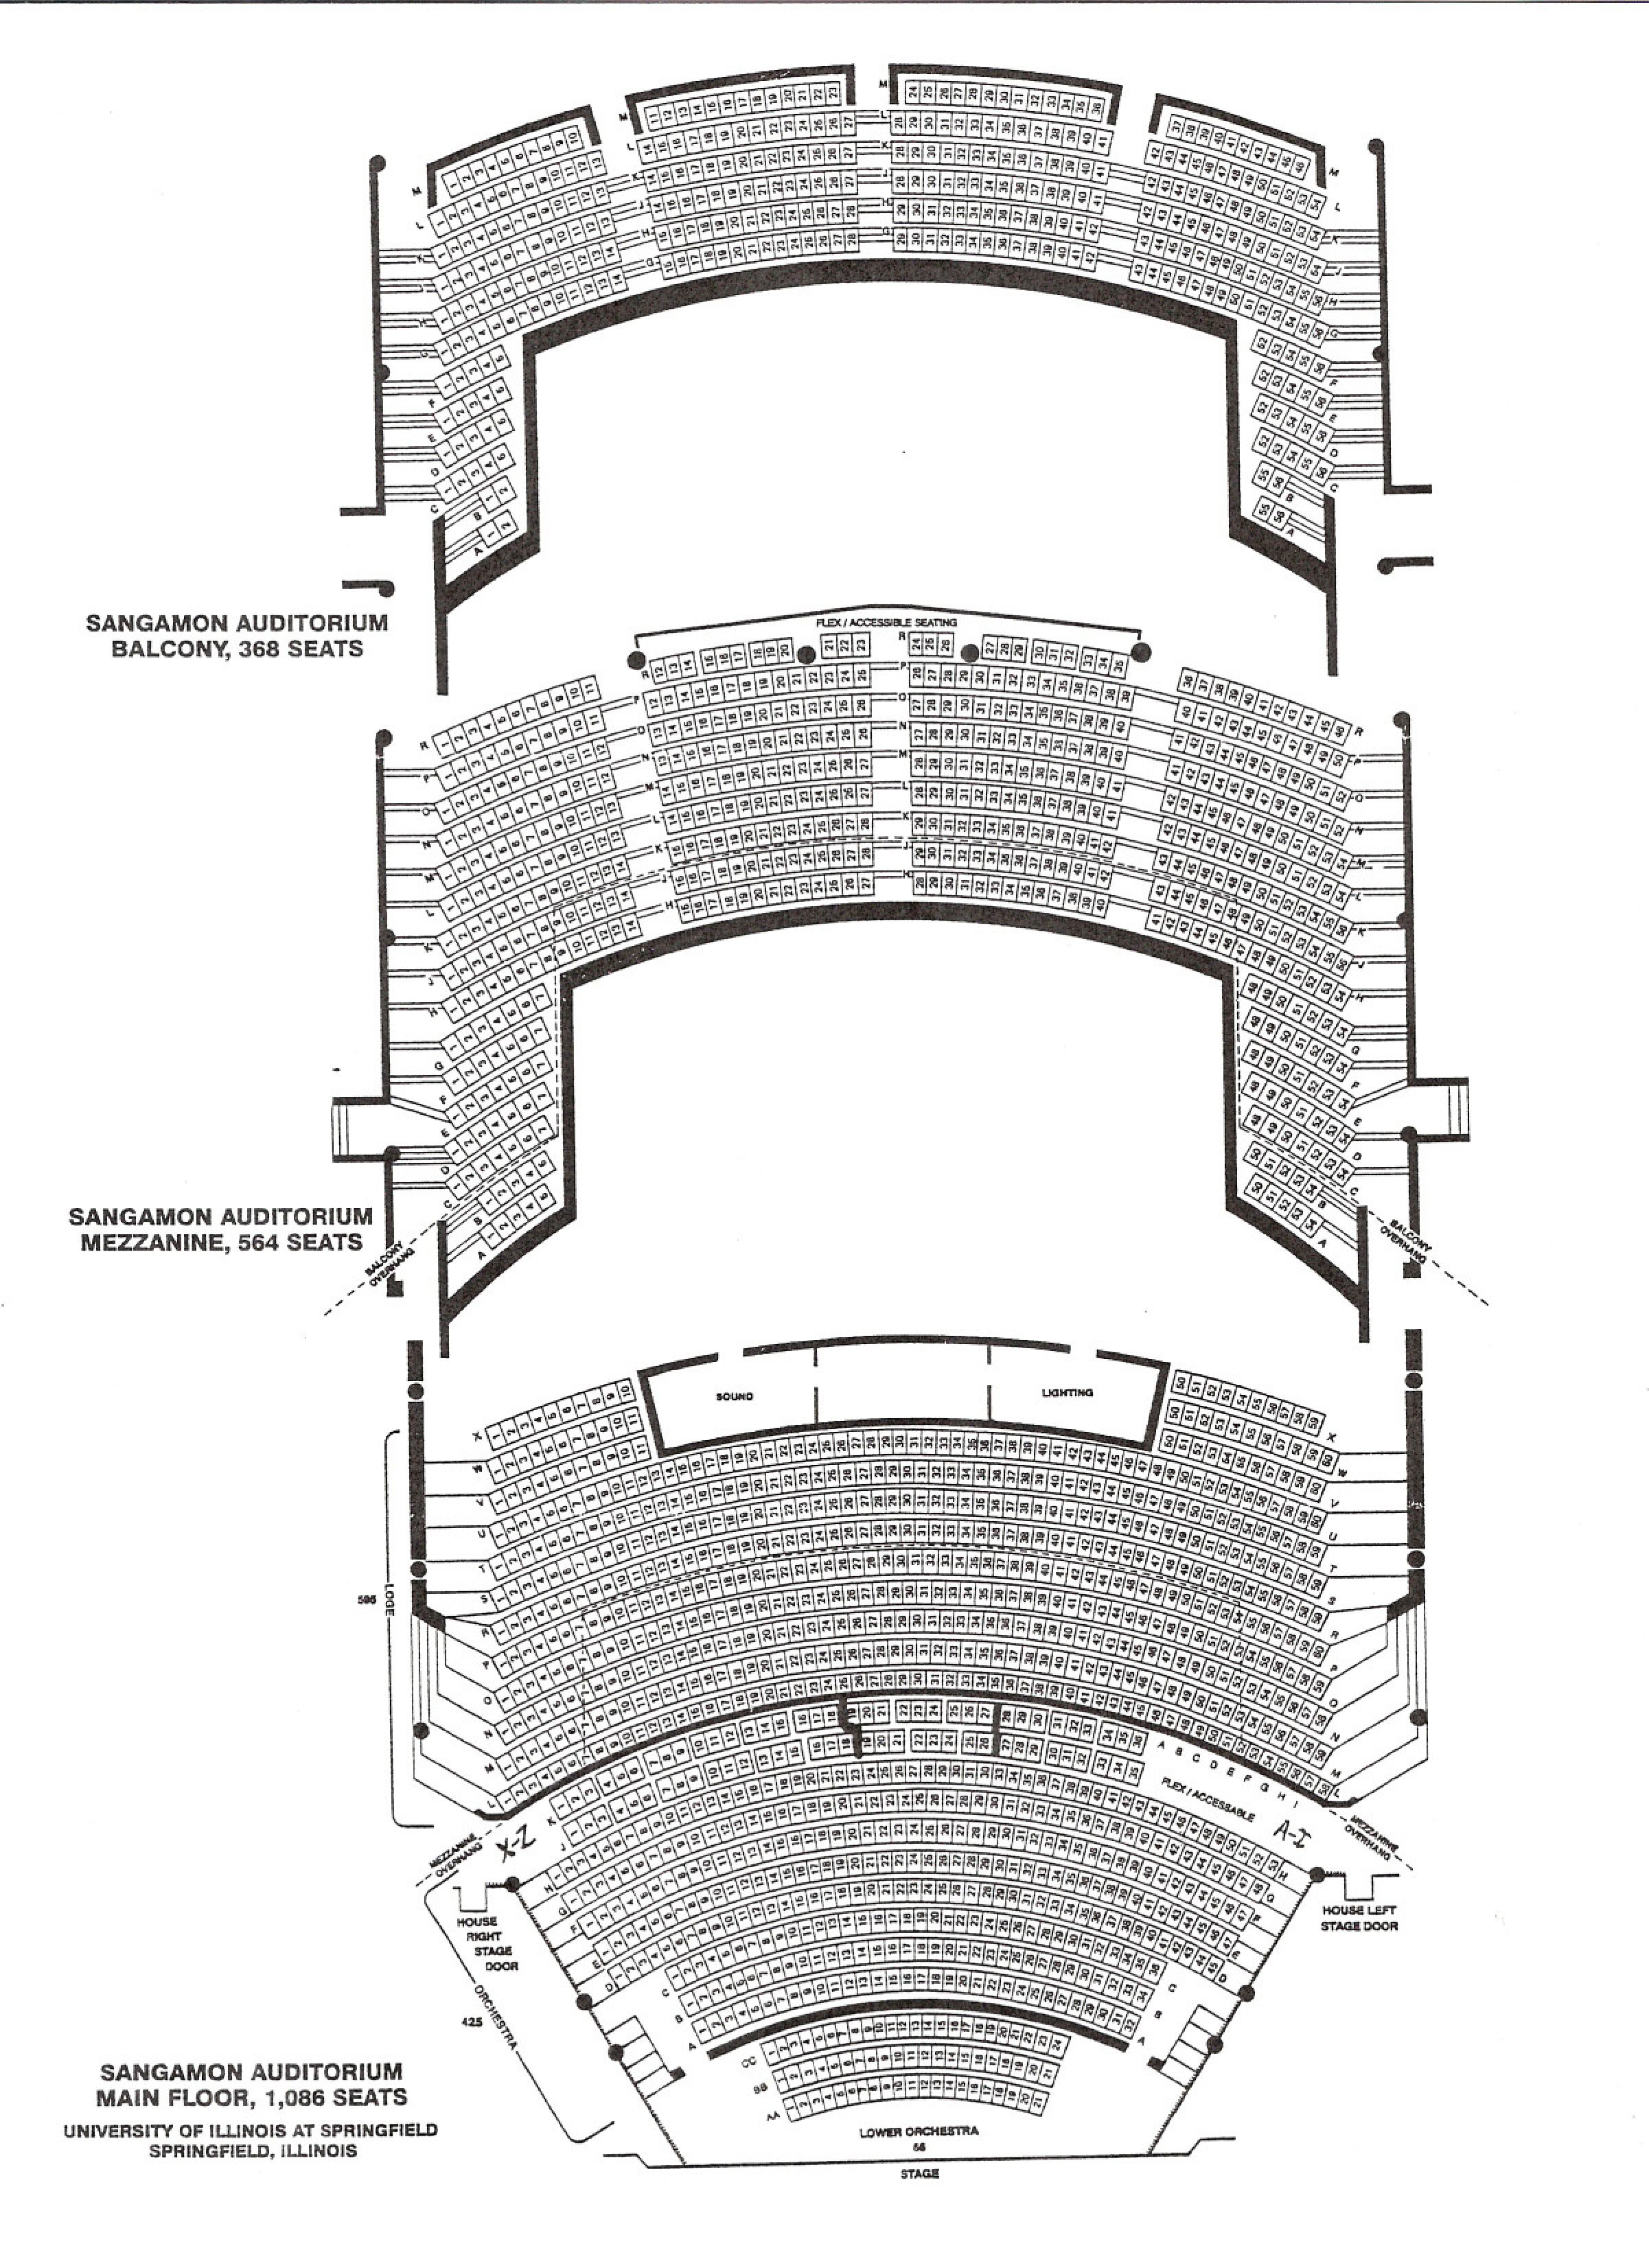 Sangamon Auditorium Seating Chart